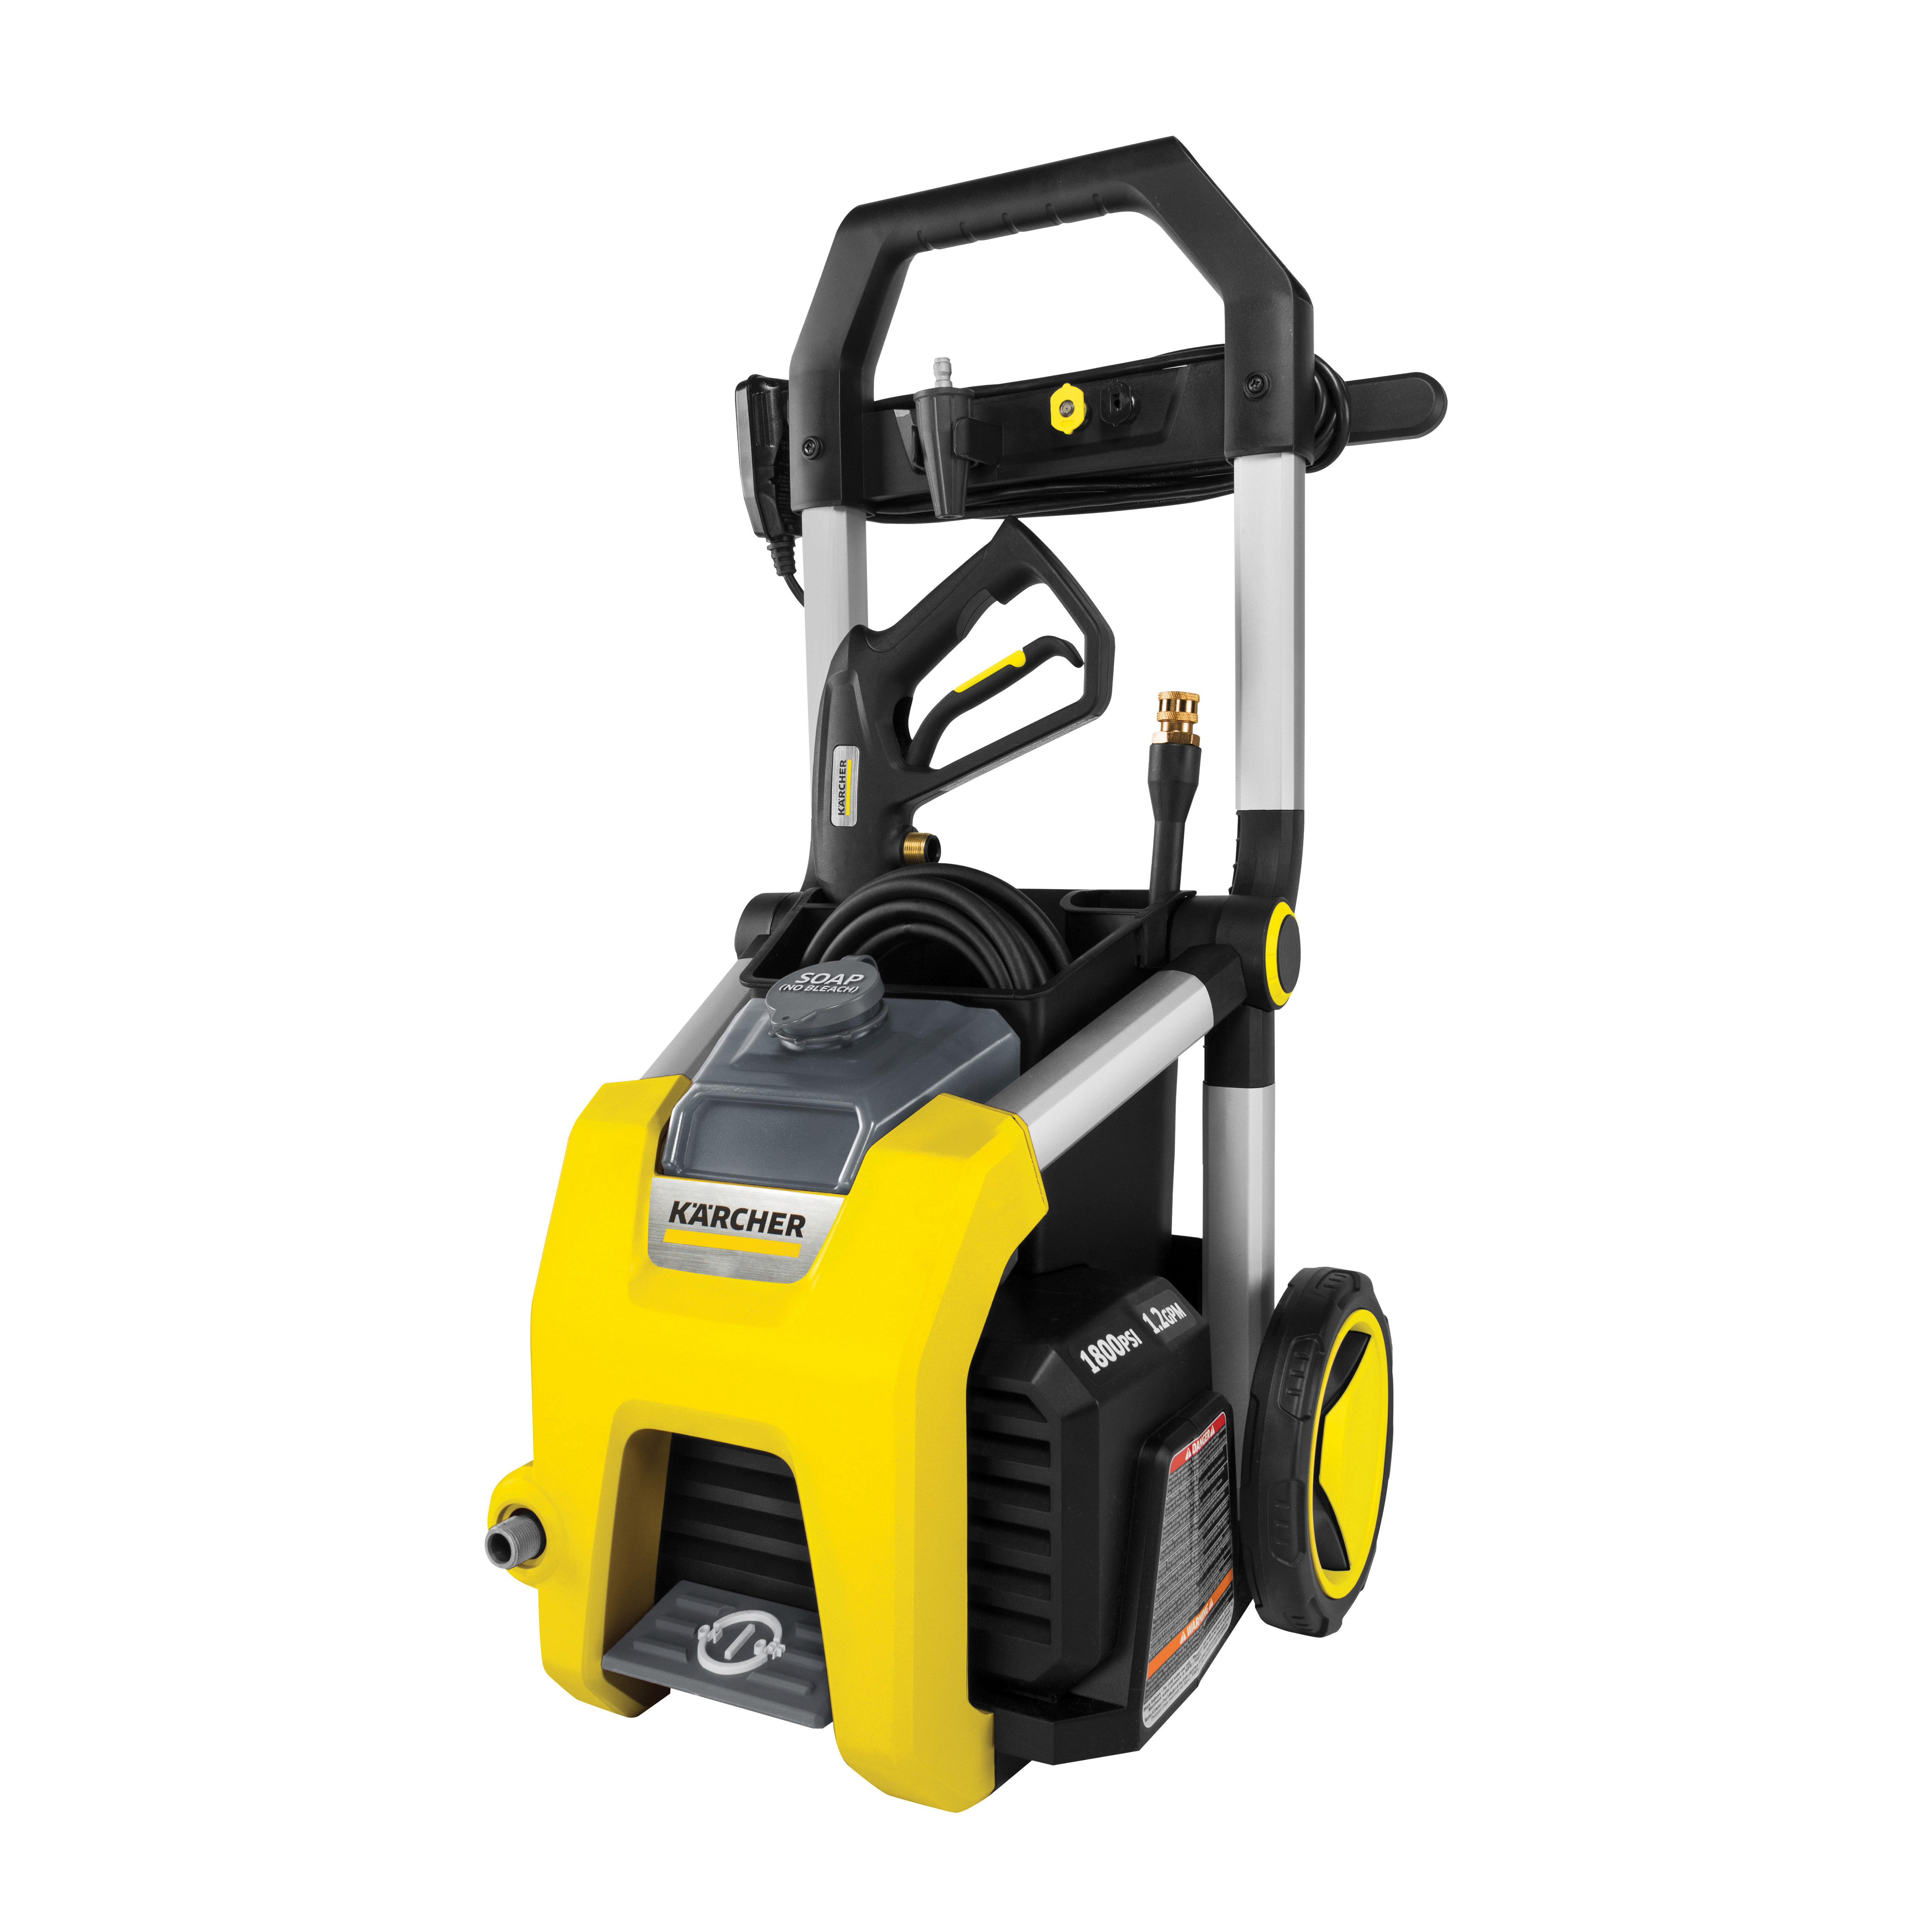 Picture of Karcher K1700 Pressure Washer, 13 A, 1700 psi Operating, 1.2 gpm, Spray Nozzle, 20 ft L Hose, Black/Yellow